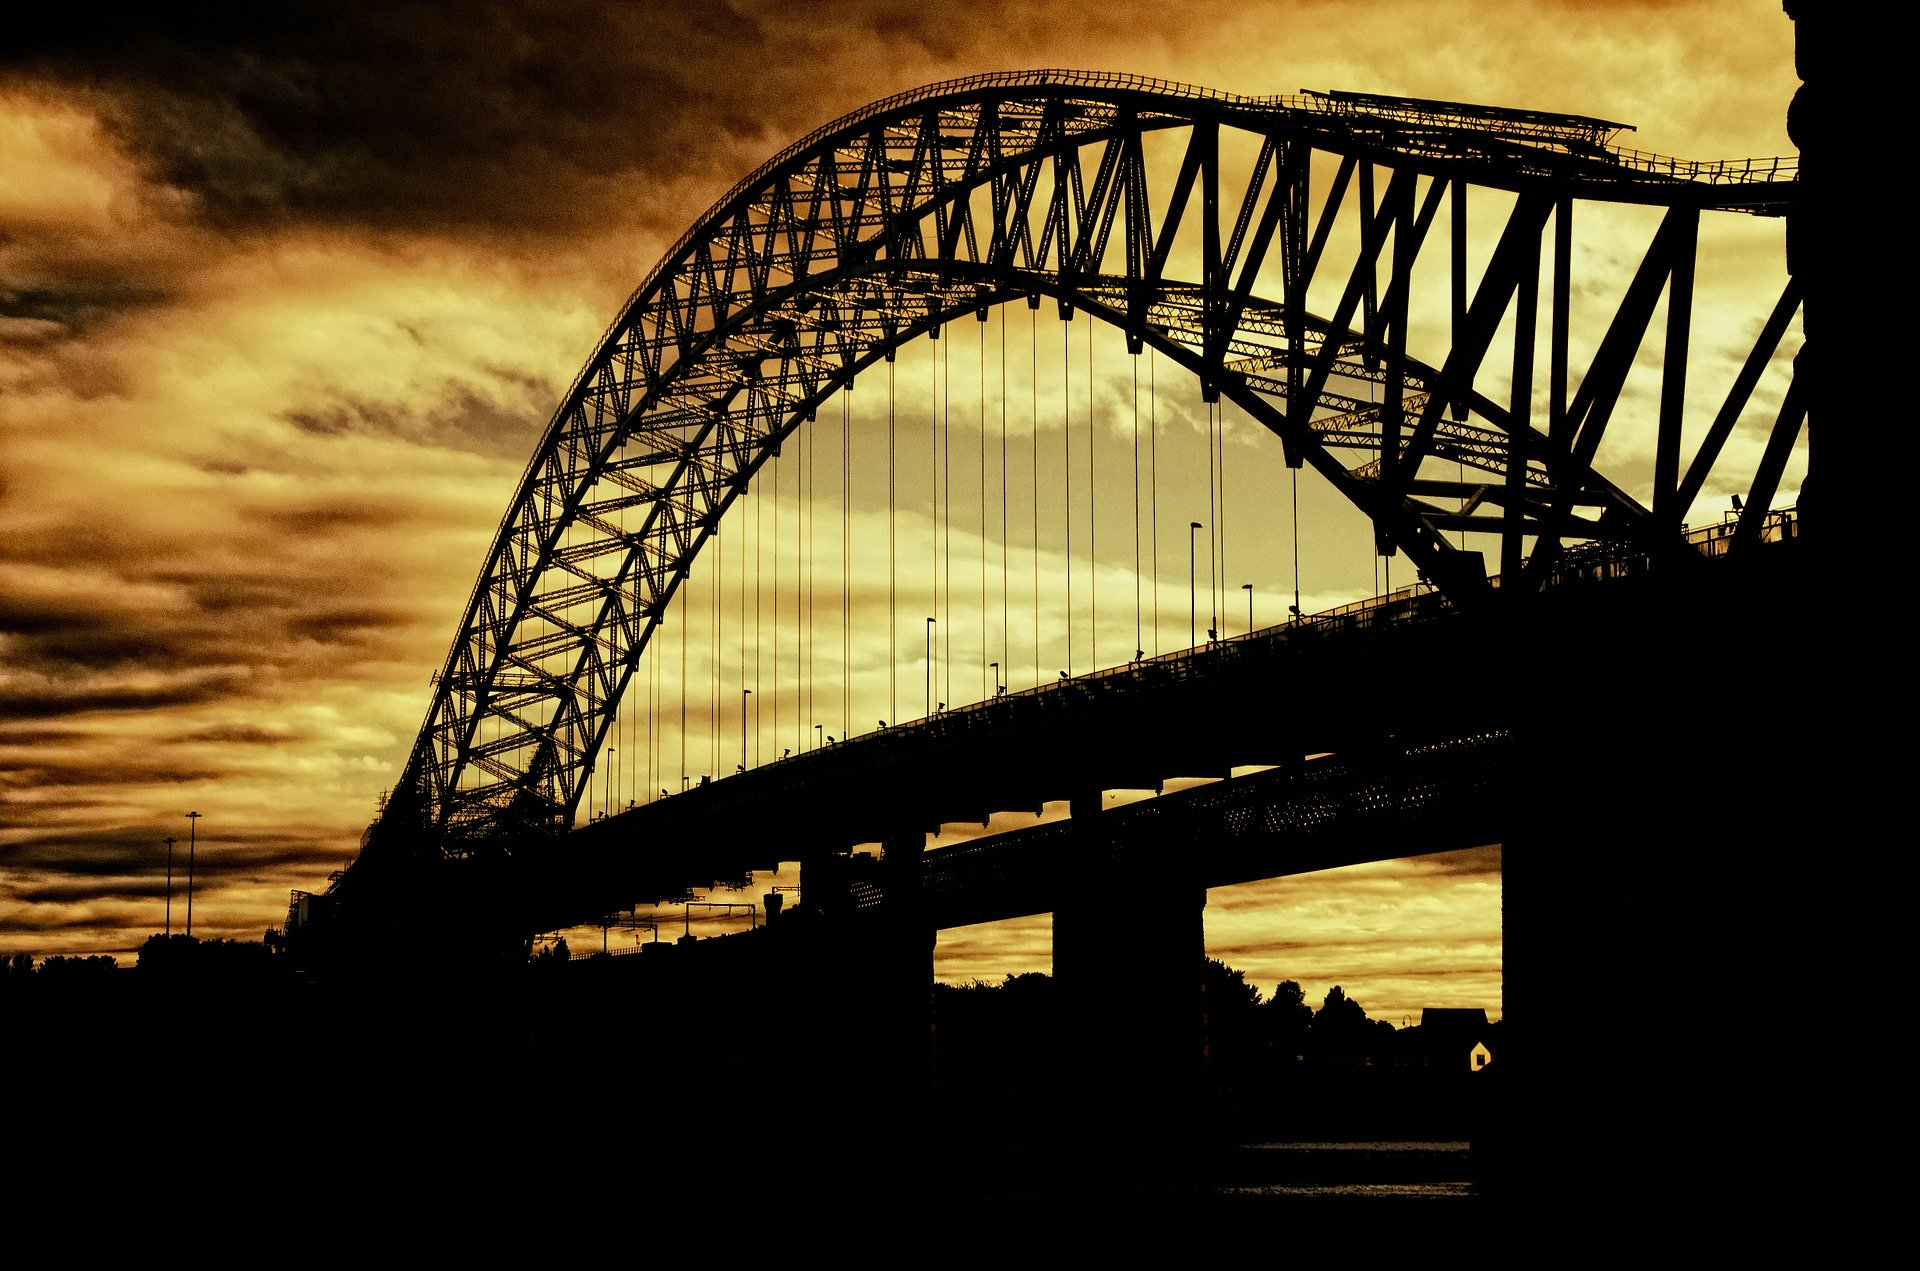 Silhouette outline of beautiful arch cantilever bridge